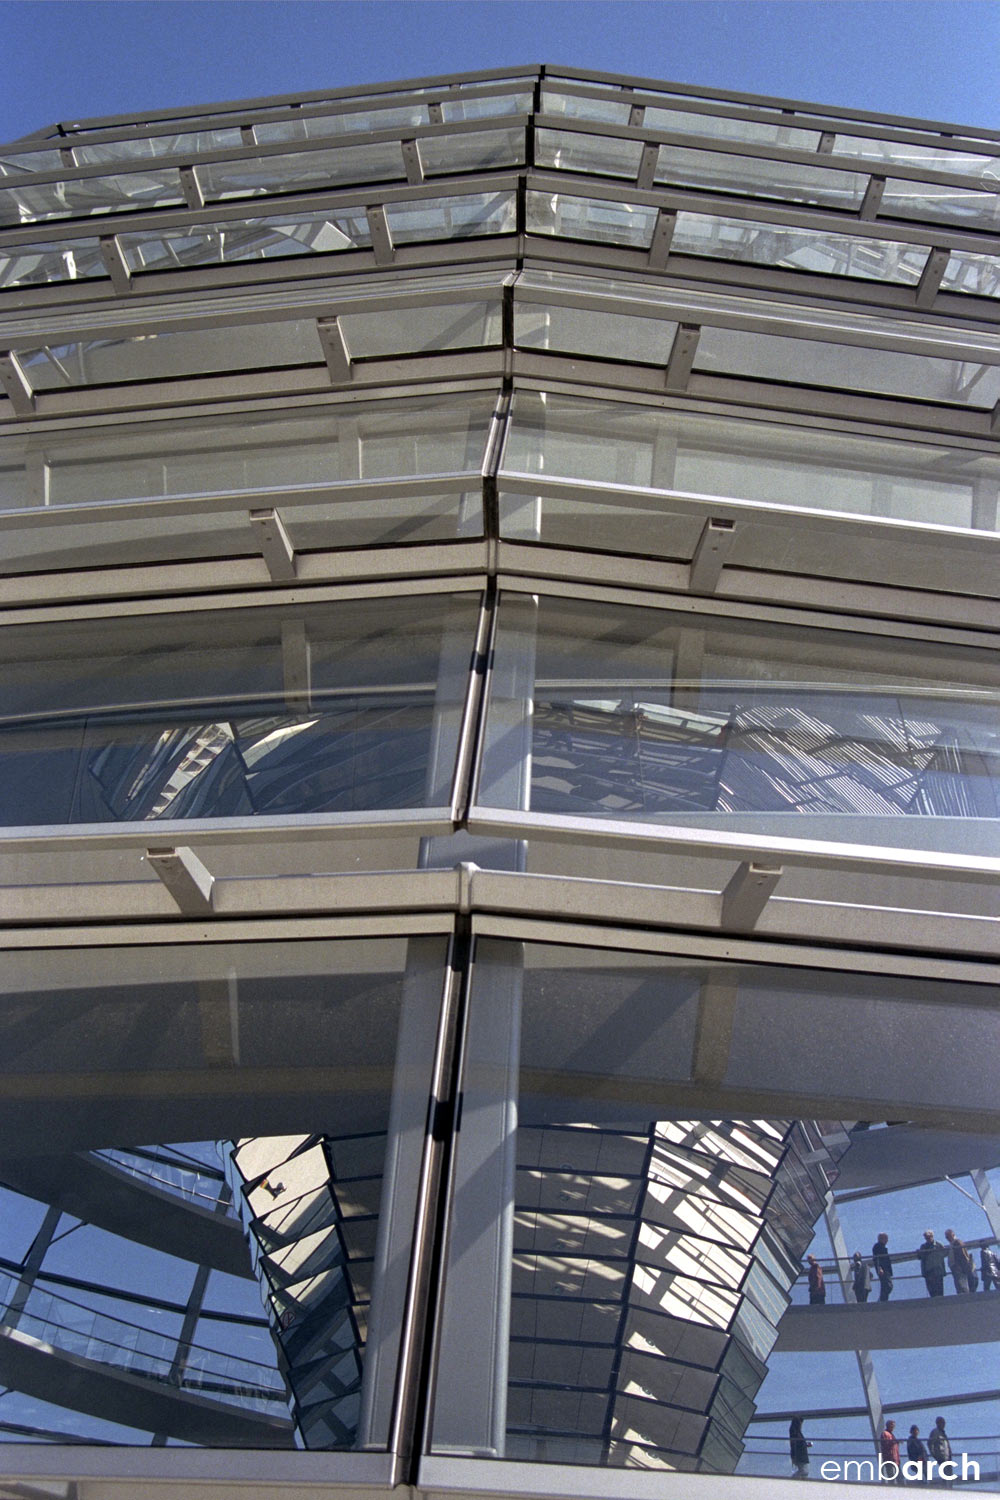 Reichstag Building - dome exterior detail